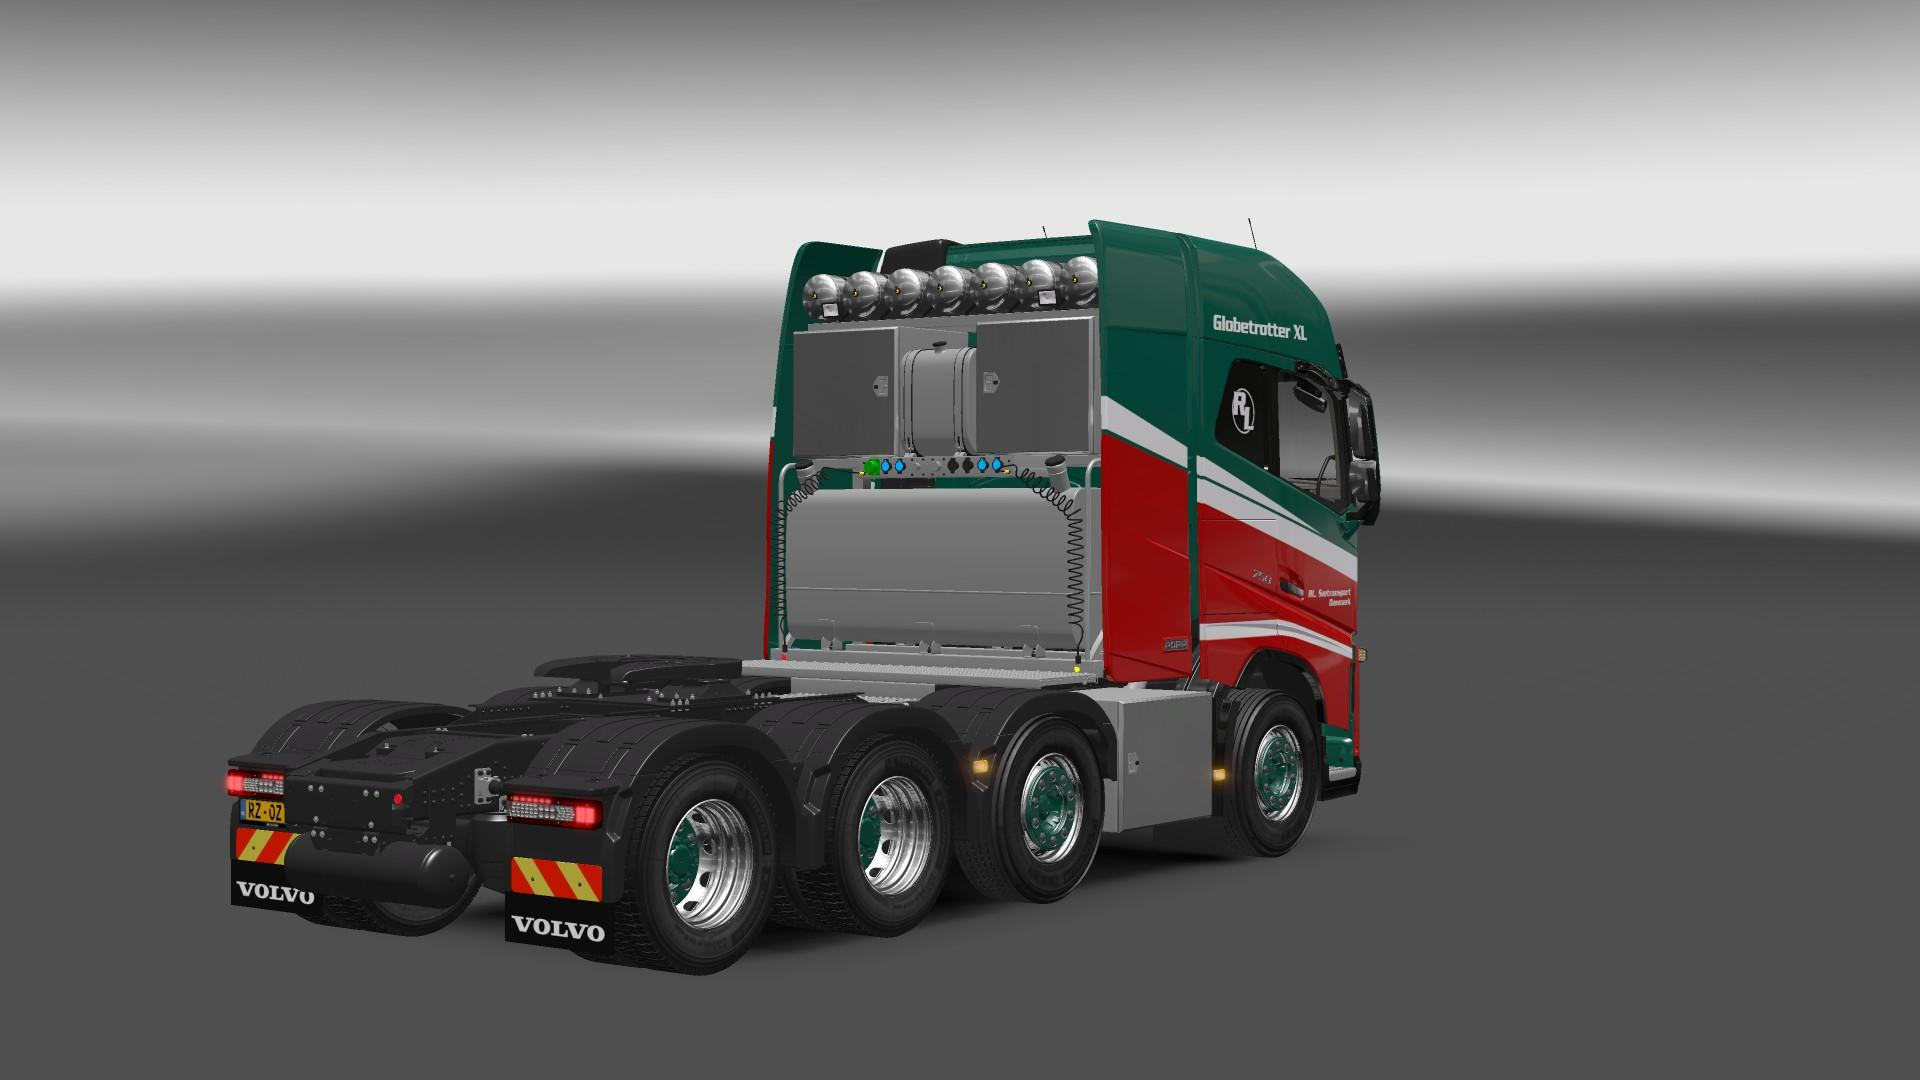 Volvo Fh 2013 8x4 1 22 Ets2 Mods Euro Truck Simulator